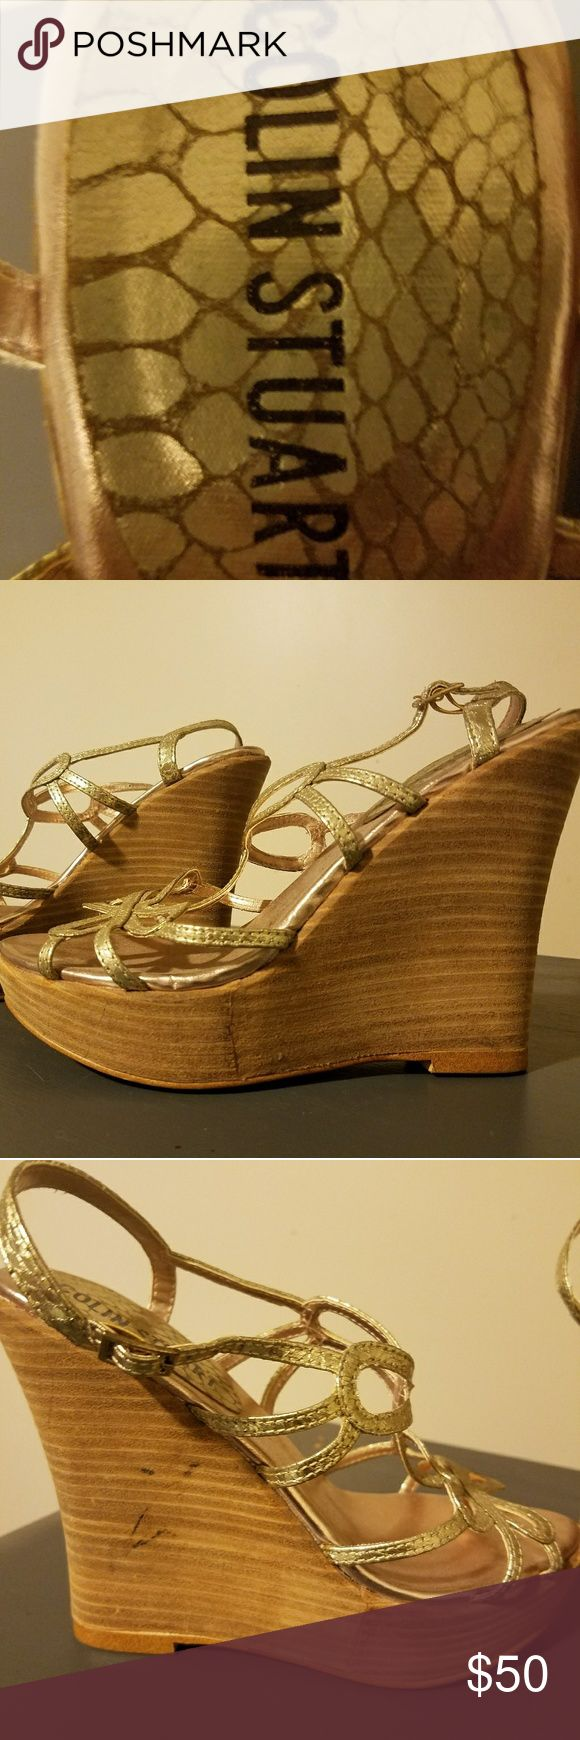 COLIN STUART SOFT GOLD BUTTERFLY WEDGES!! COLIN STUART SOFT GOLD BUTTERFLY WEDGES!! VERY STYLISH!! WORN MAYBE TWICE!!! SIZE 6.5 Colin Stuart Shoes Wedges